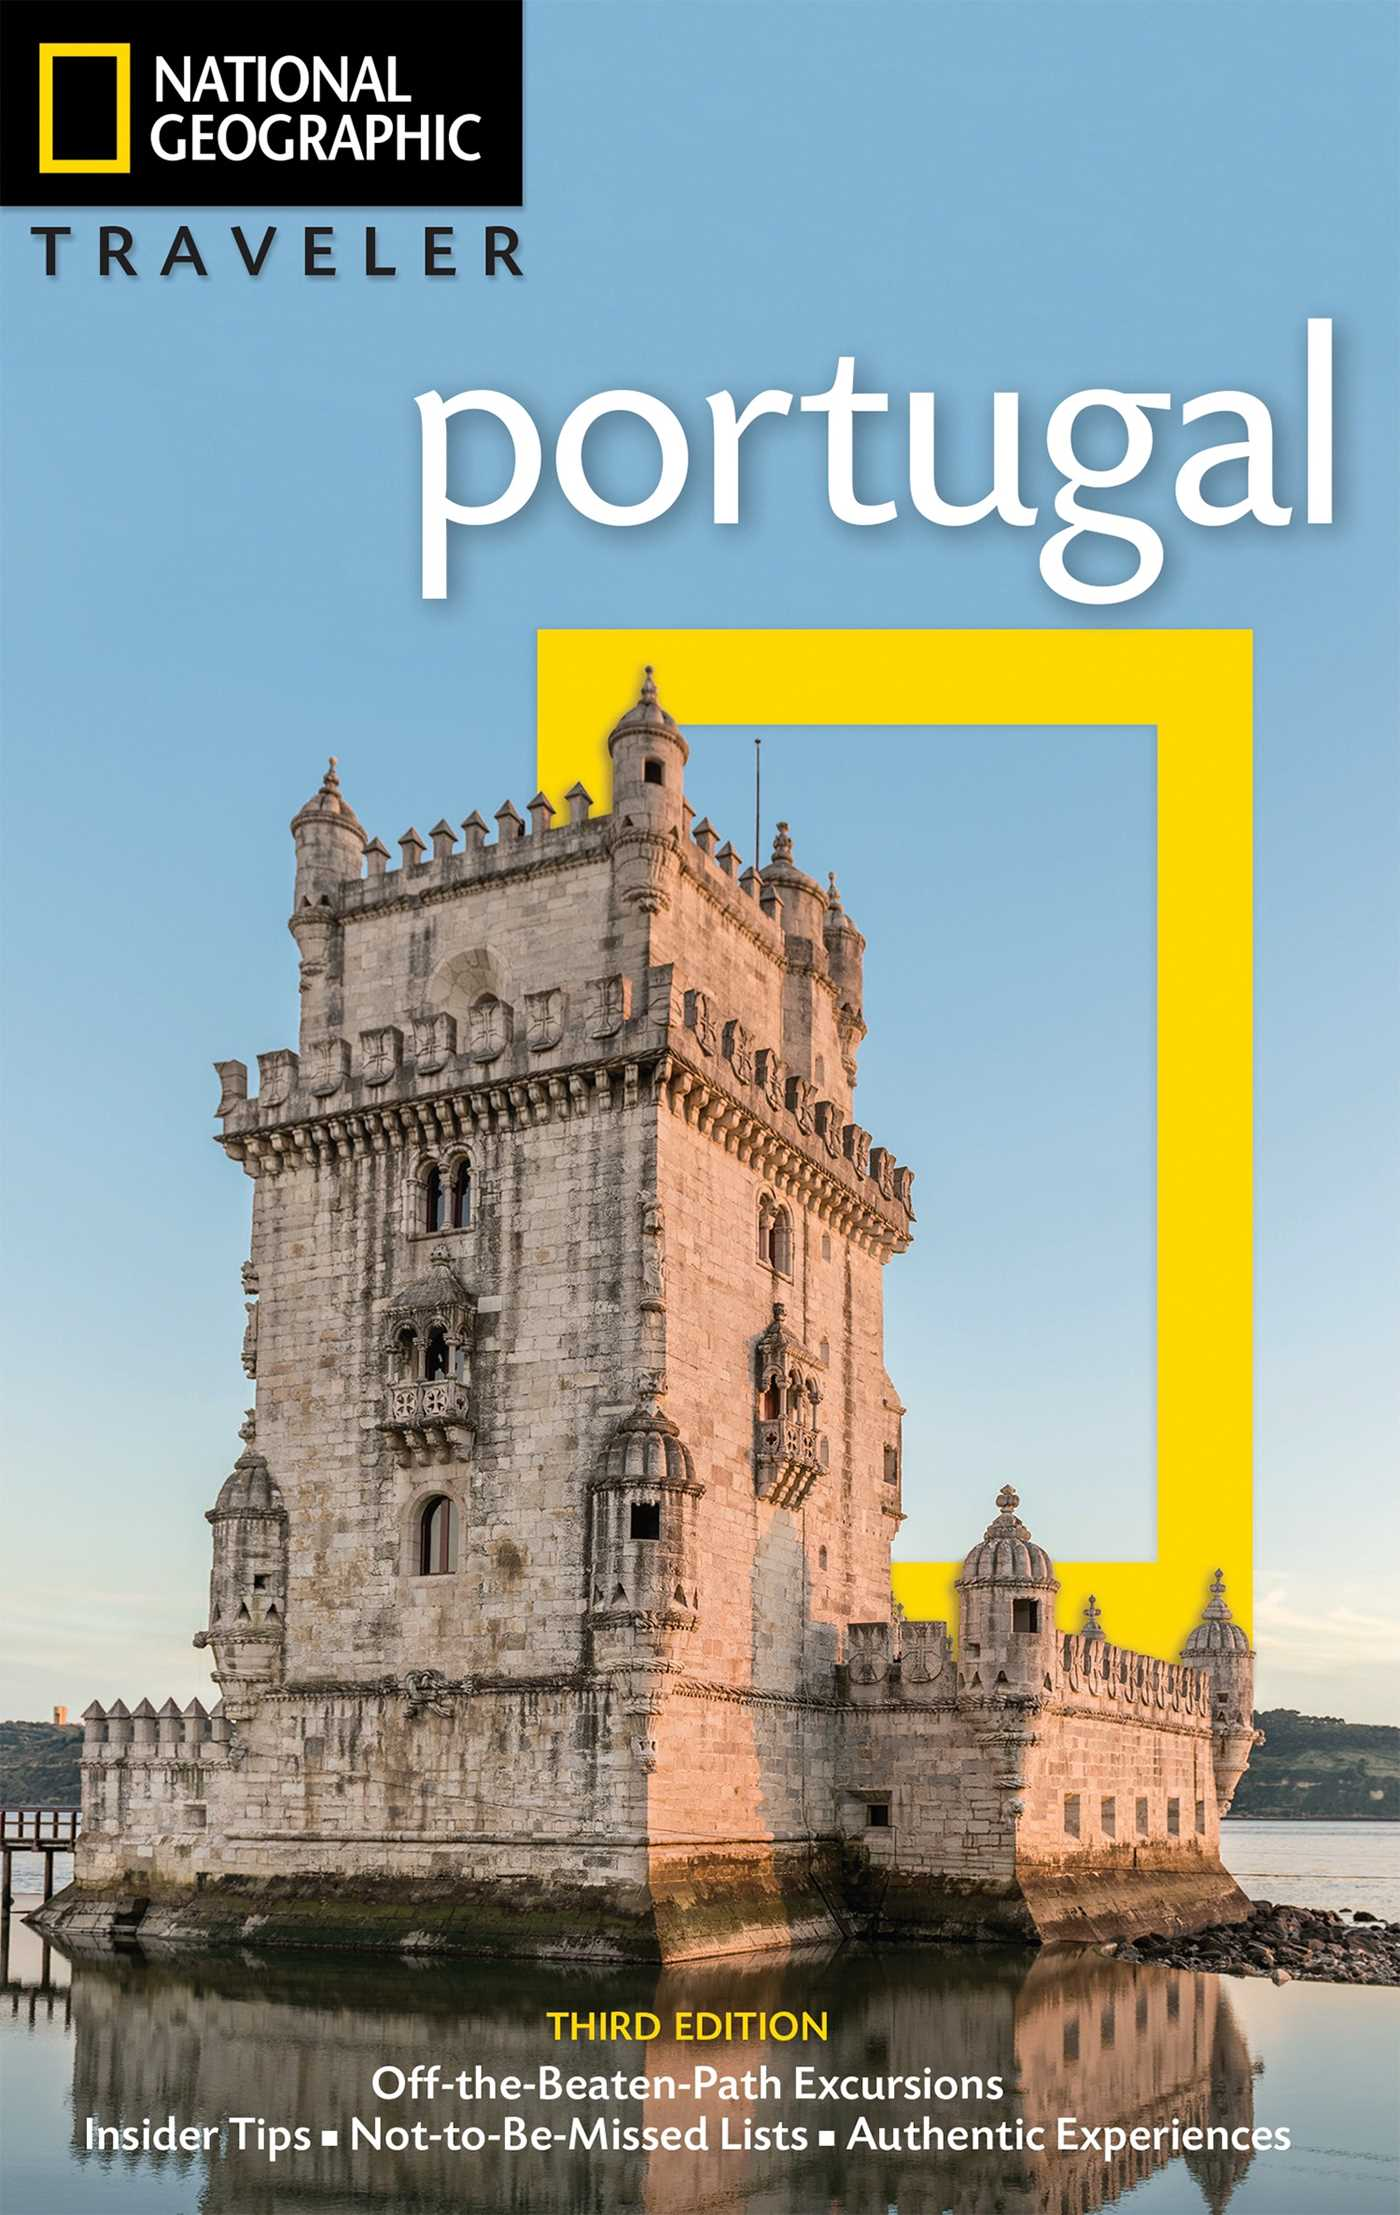 National geographic traveler portugal 3rd ed 9781426218811 hr